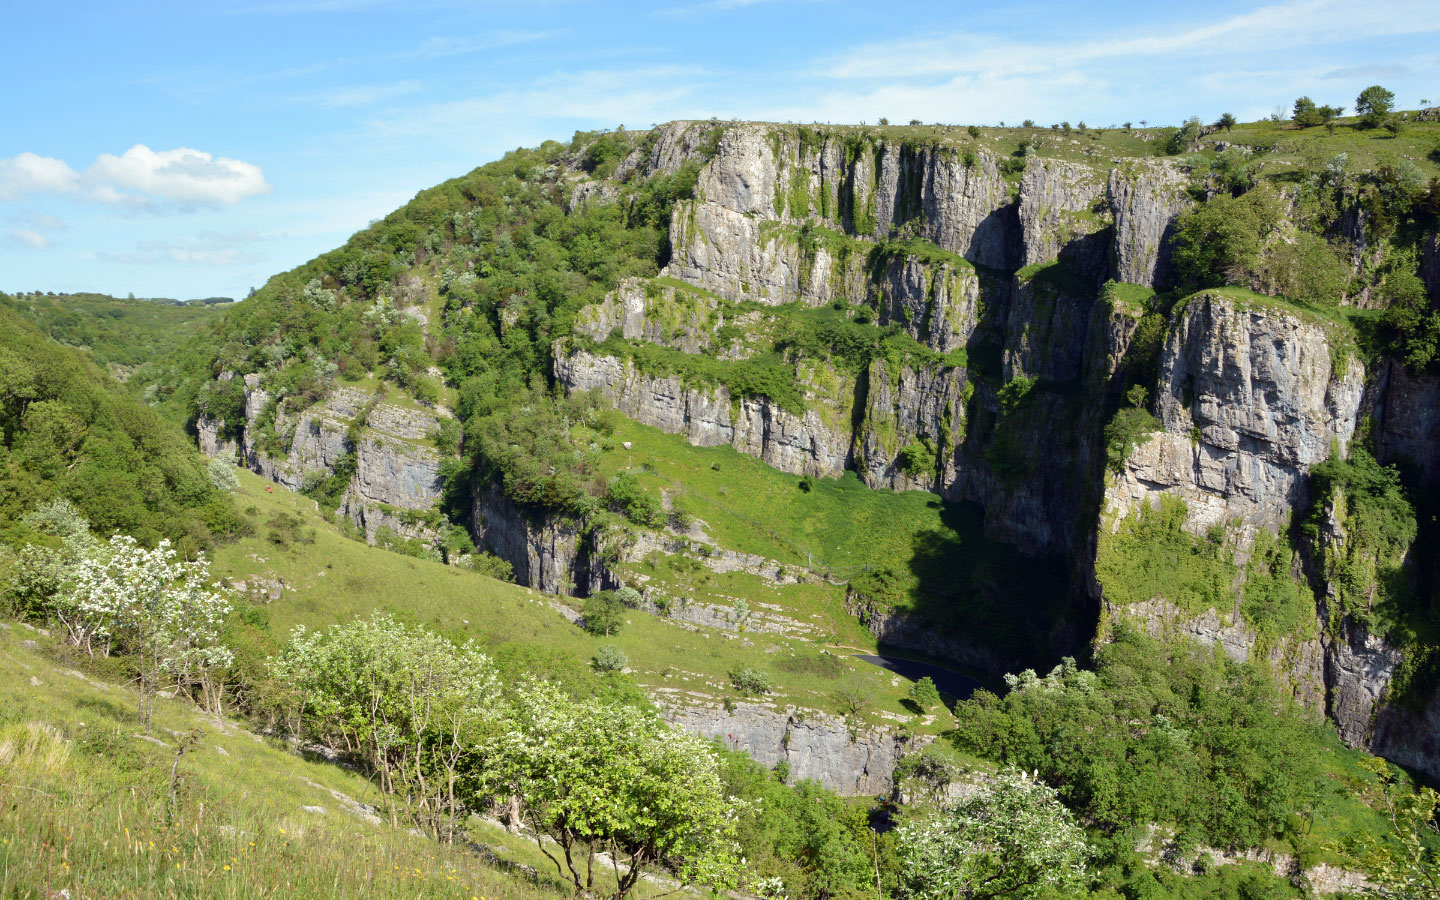 Views of Cheddar Gorge in Somerset